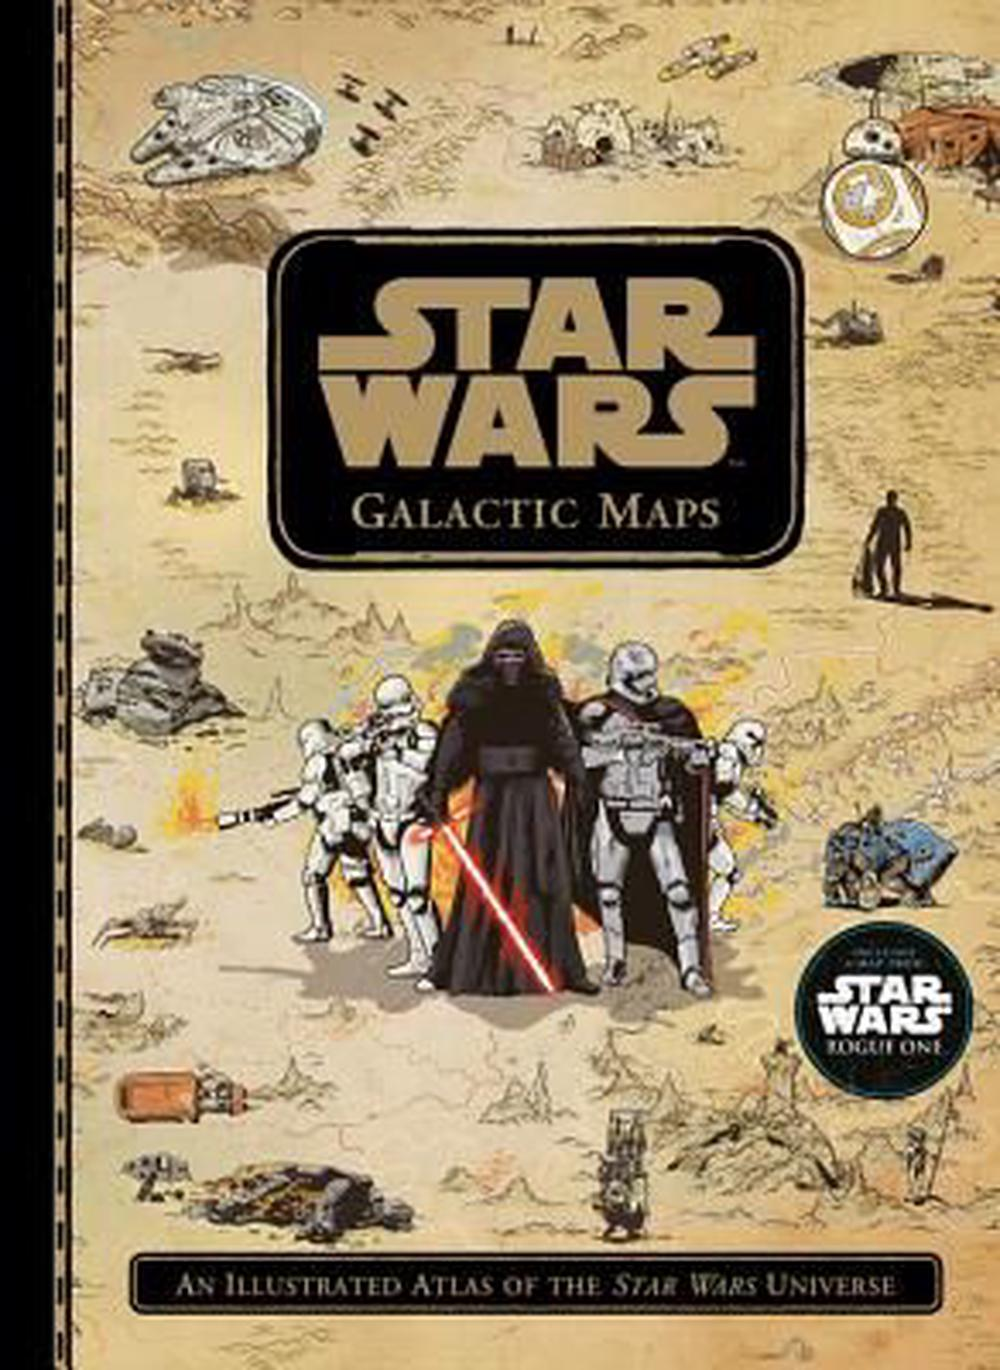 Star Wars Galactic MapsAn Illustrated Atlas of the Star Wars Universe